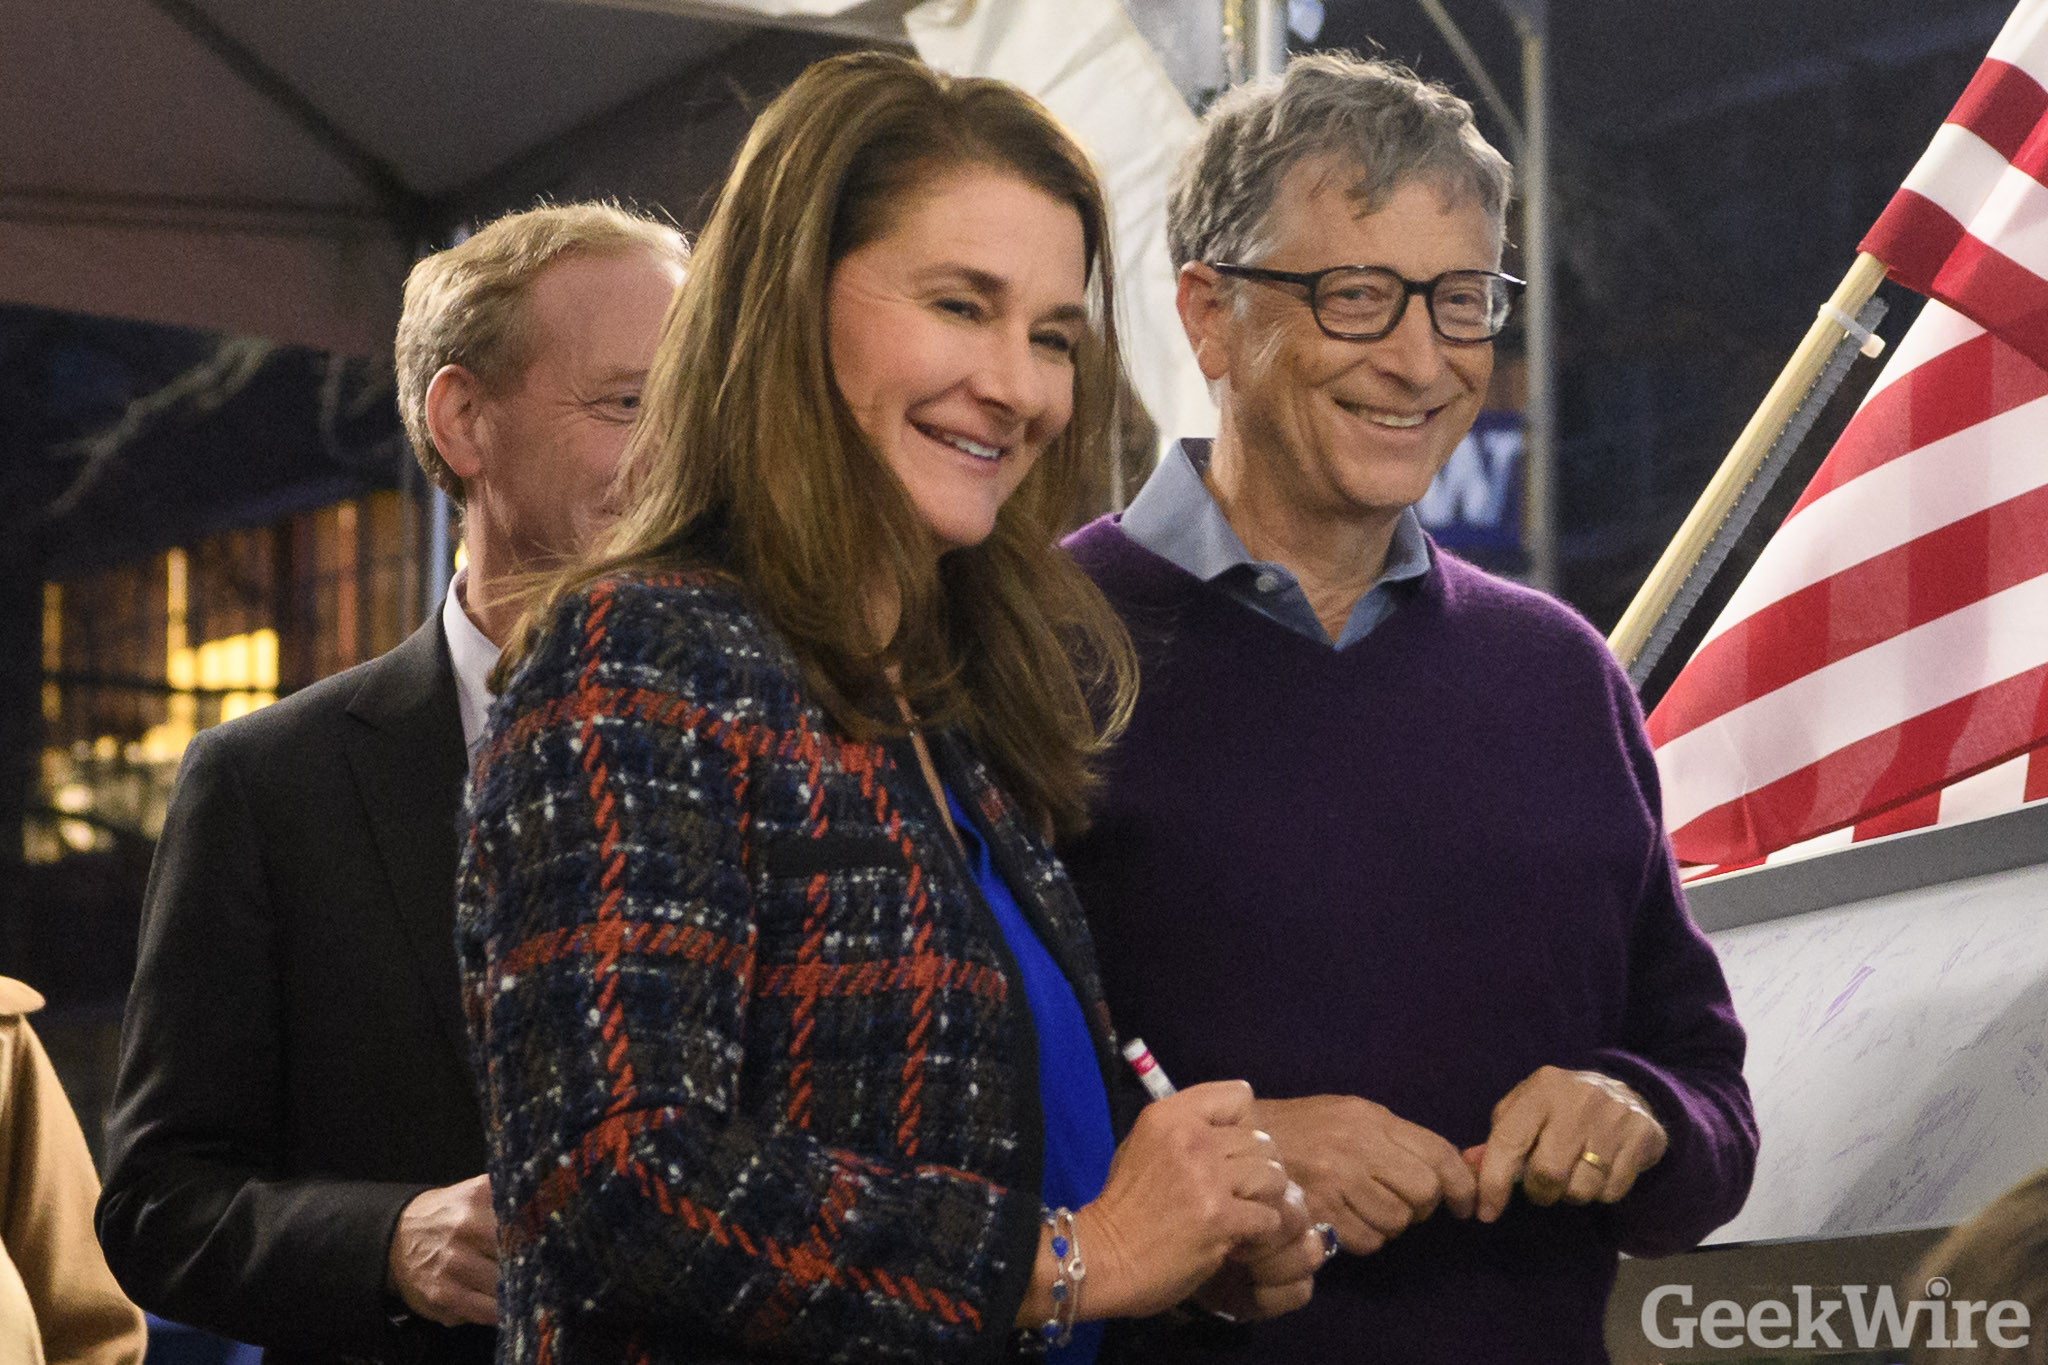 Bill and Melinda Gates announce decision to end marriage after 27 years